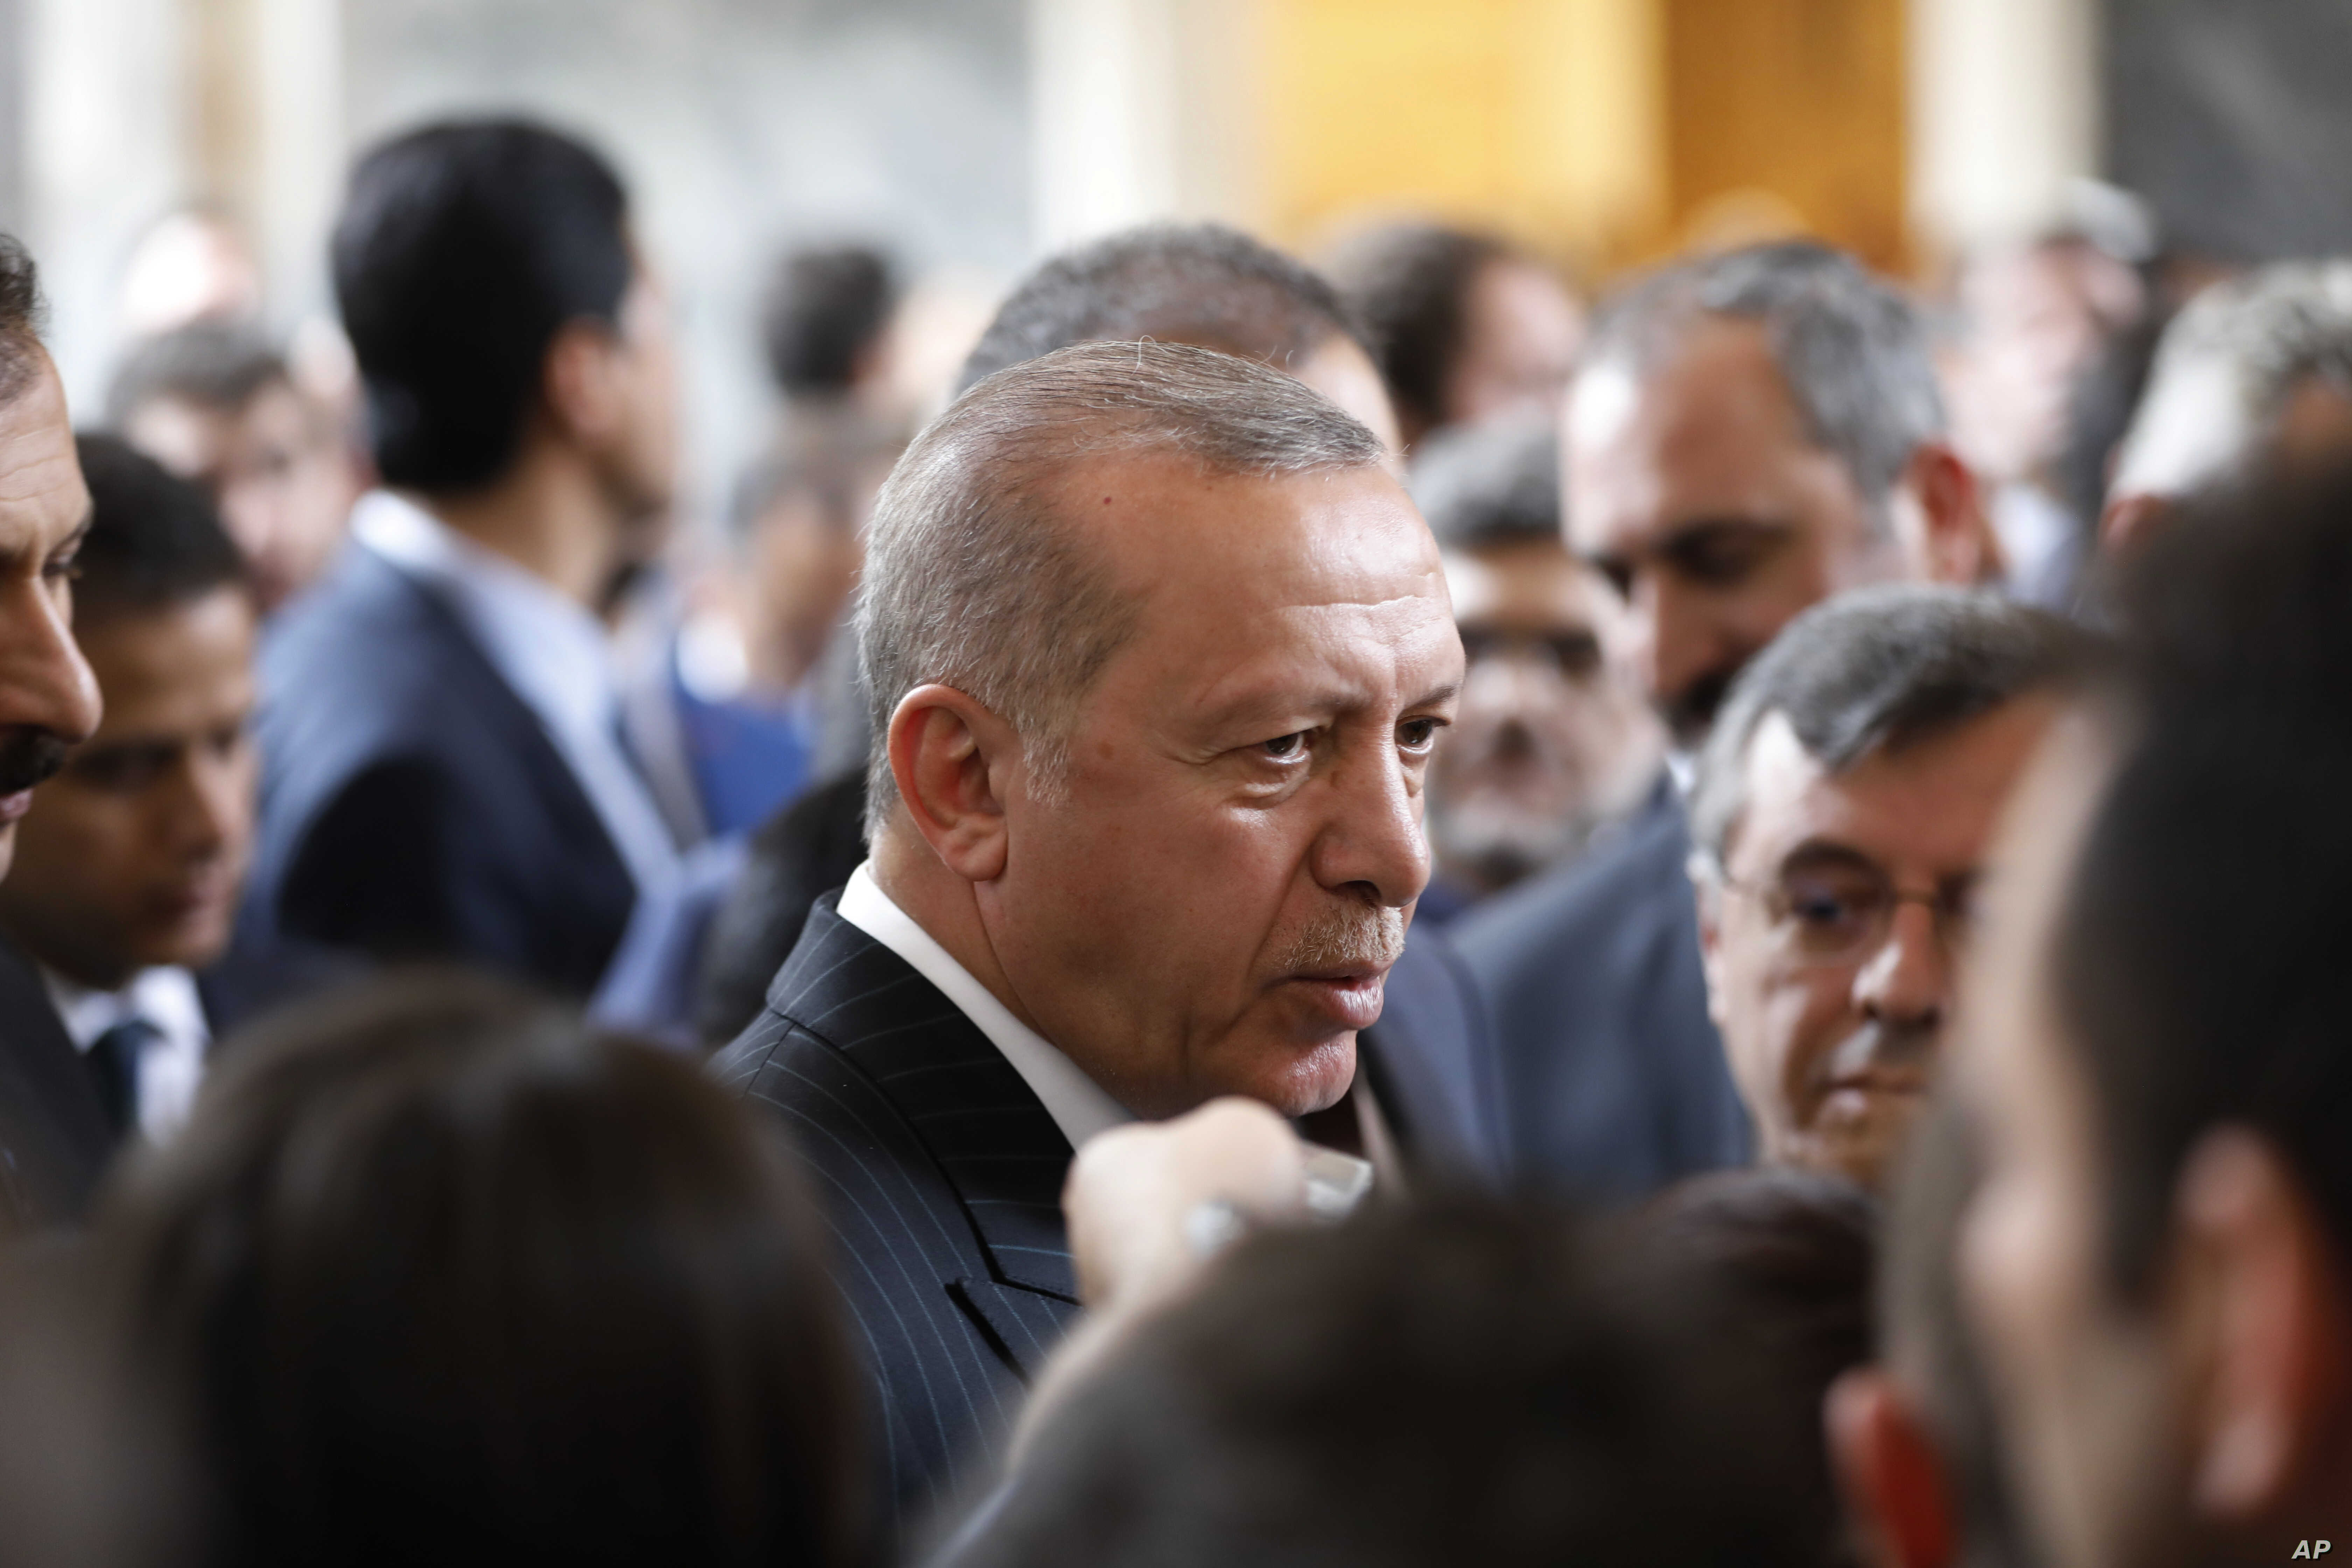 Turkey's President Recep Tayyip Erdogan, talks to MPs of his ruling Justice and Development Party (AKP) after delivering a speech at the parliament in Ankara, Turkey, Tuesday, Nov. 20, 2018.